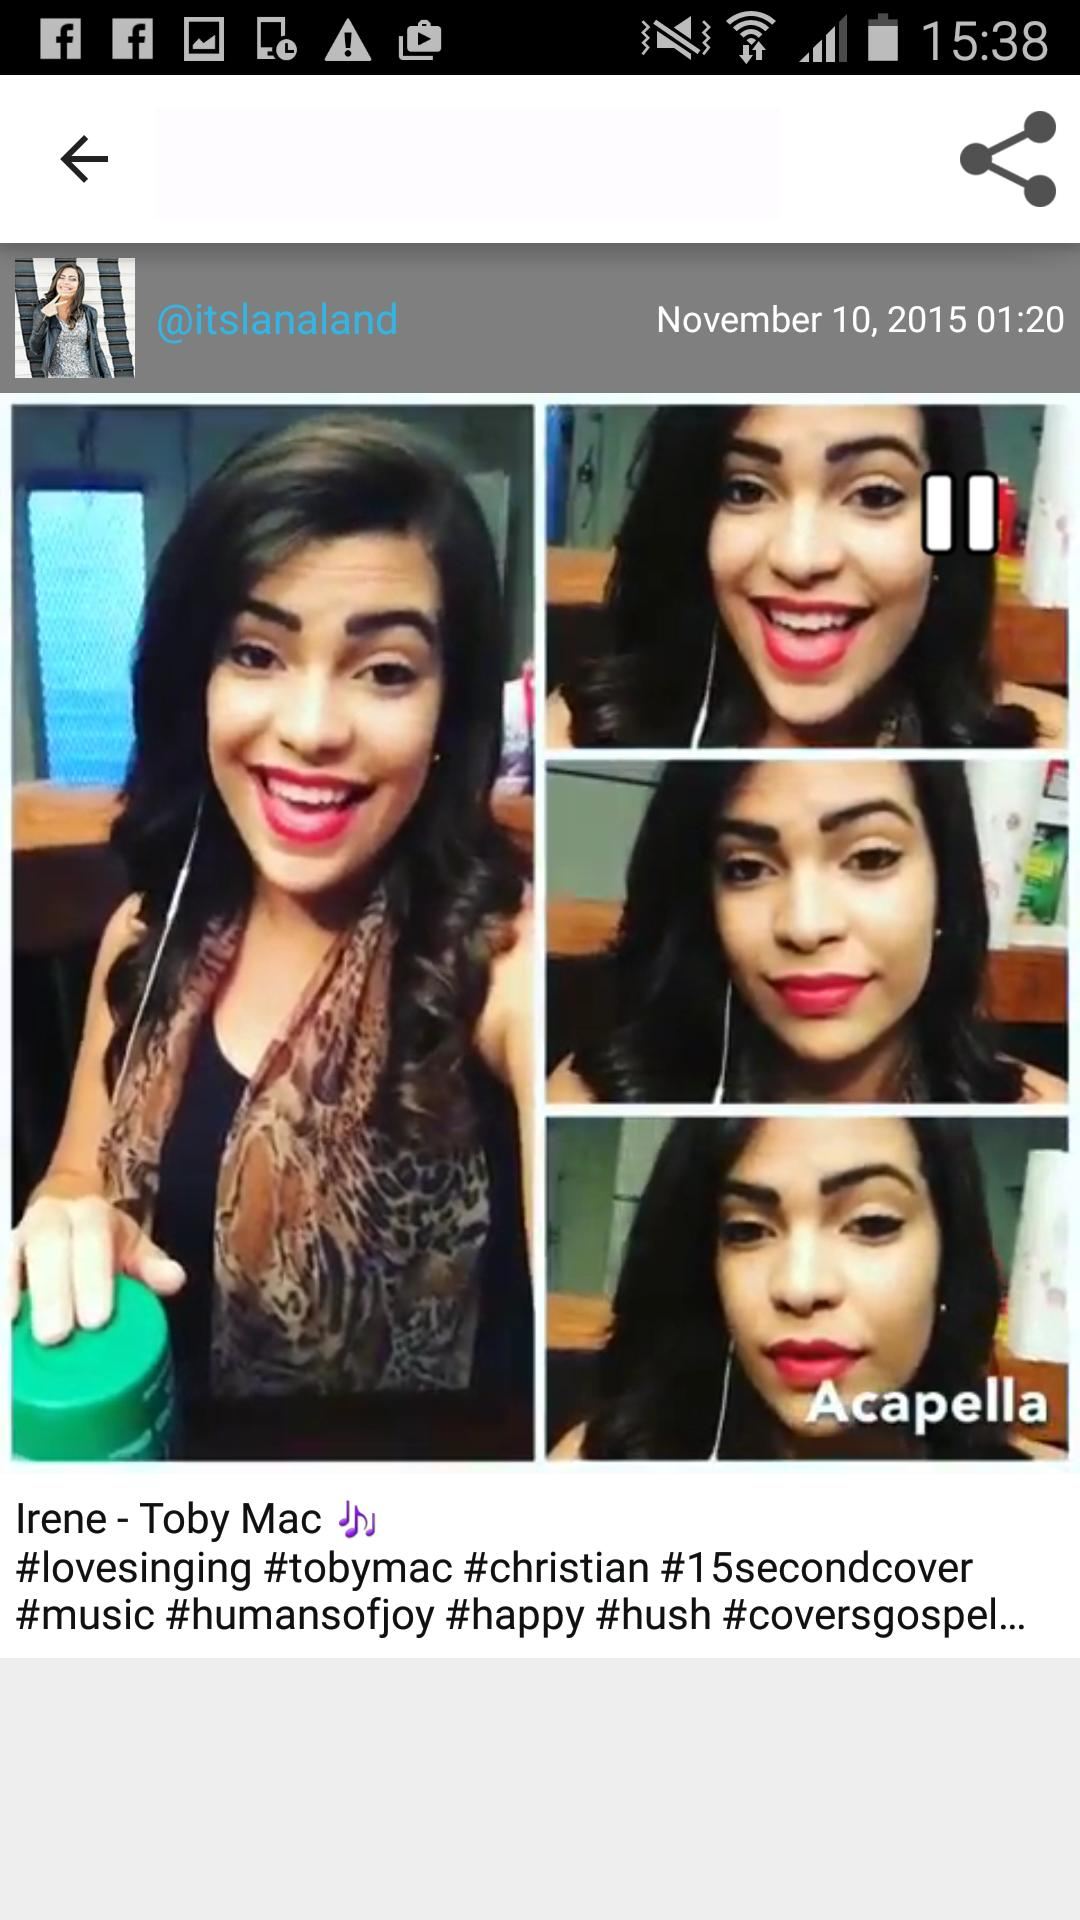 Player for Acapella singing for Android - APK Download